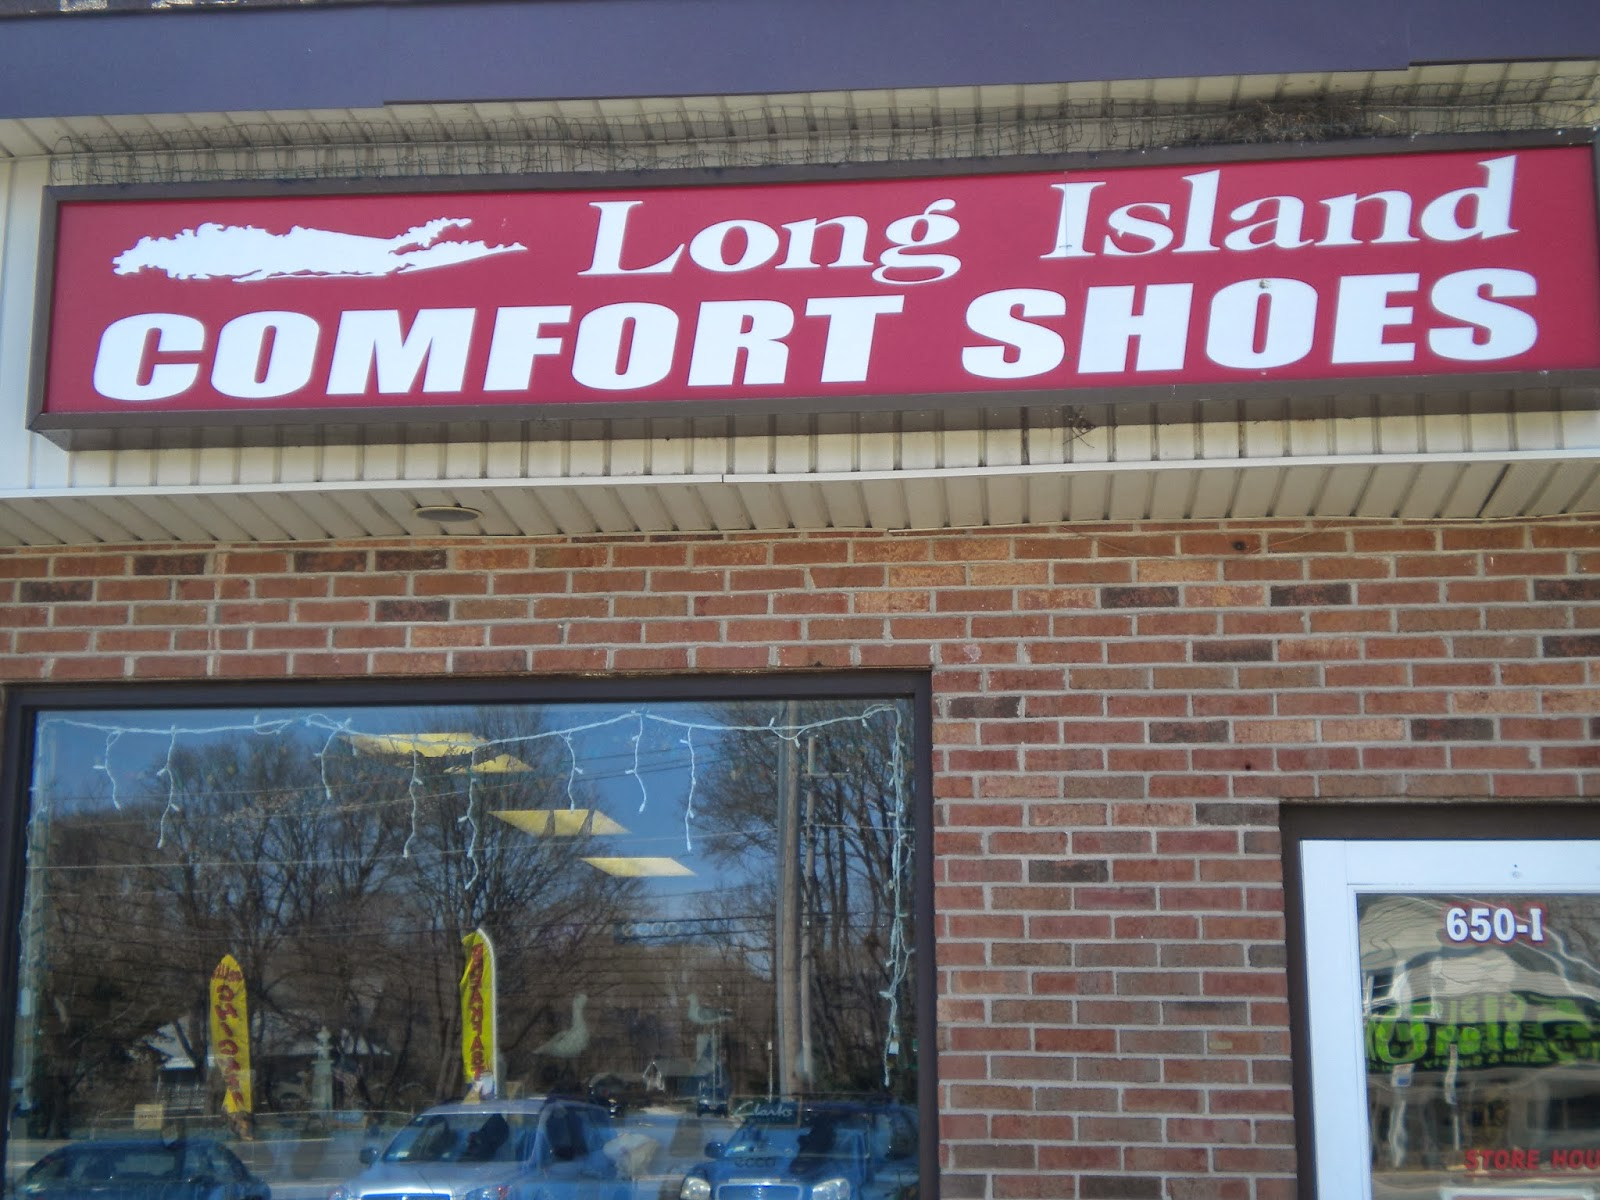 7945026ad3 The Store - Long Island Comfort Shoes and Pedorthic Services